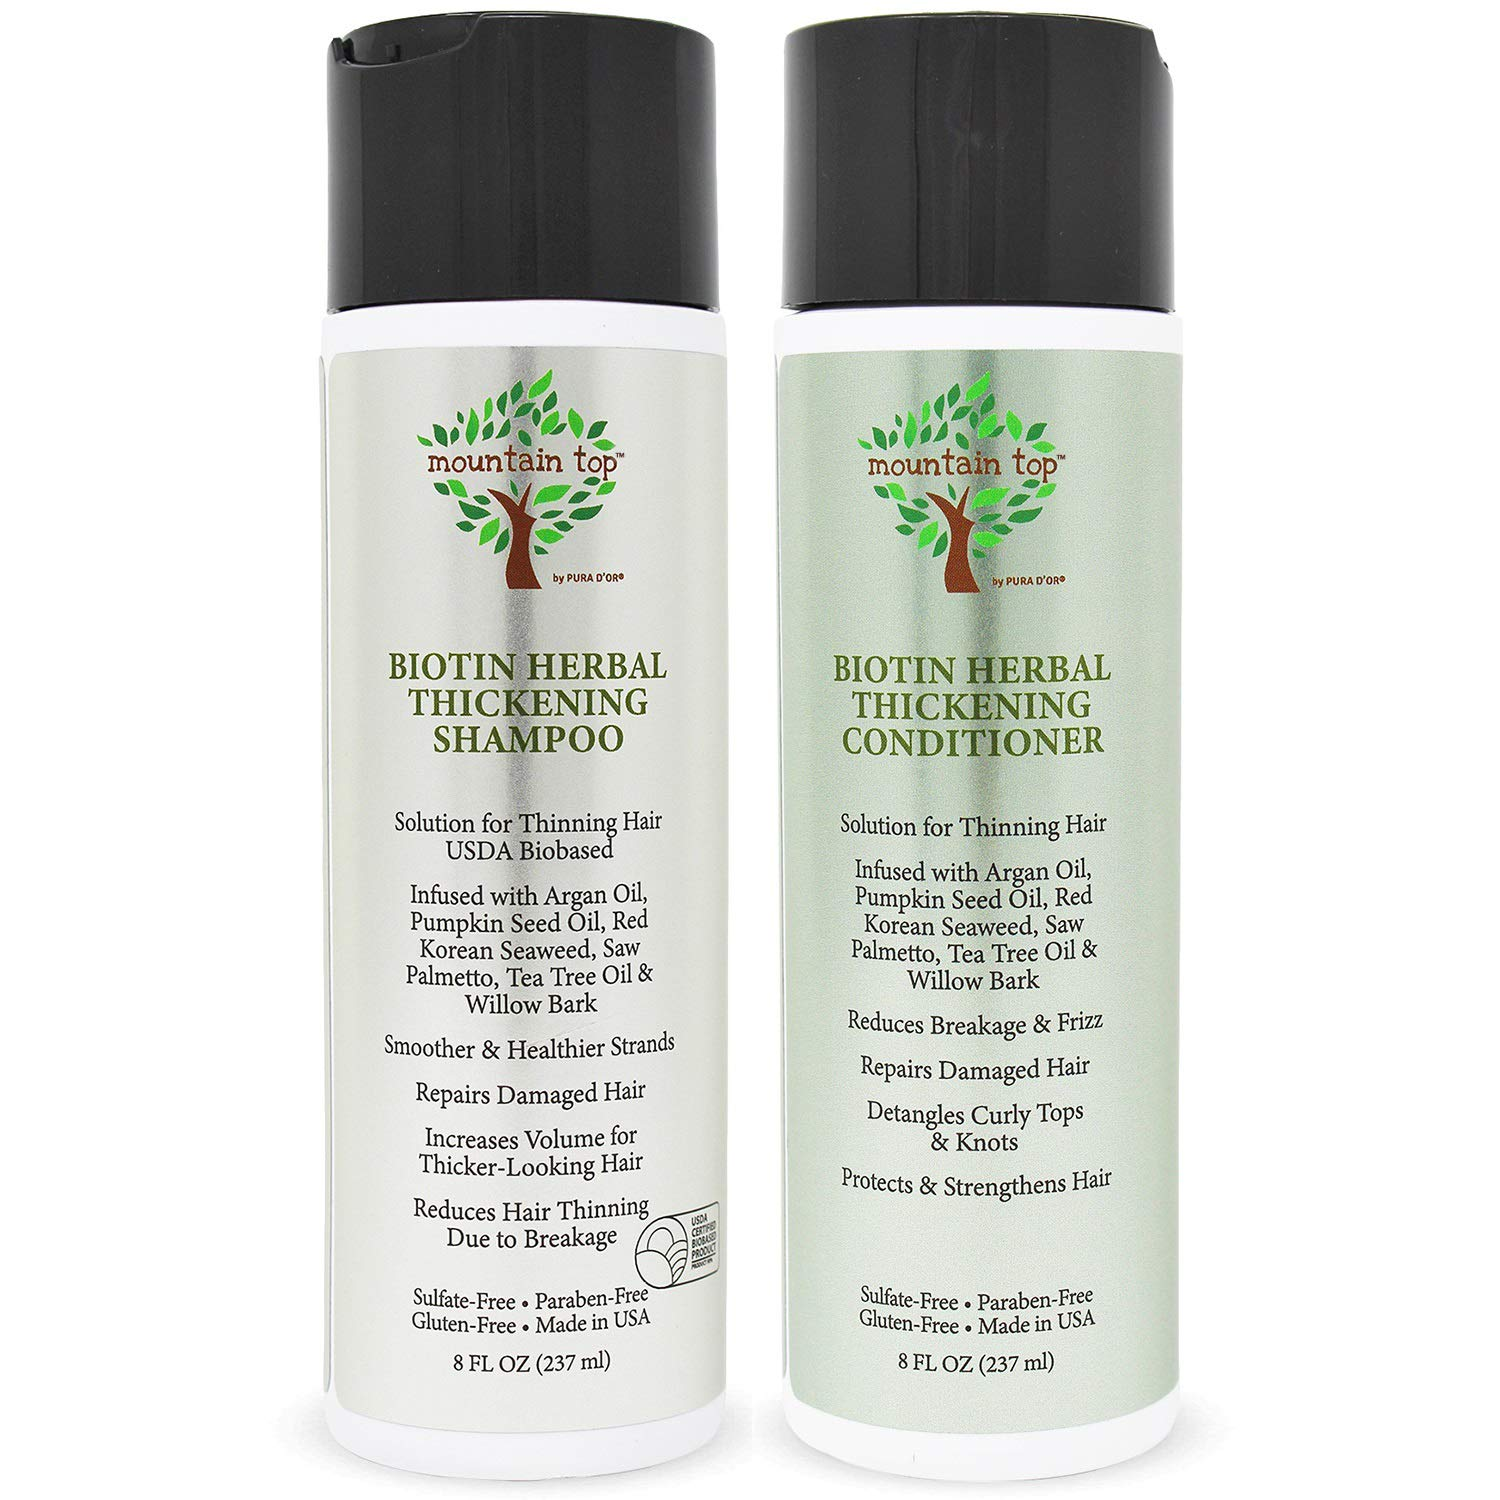 MOUNTAIN TOP Biotin Herbal Shampoo Set Thickening Conditioner New arrival Fashionable